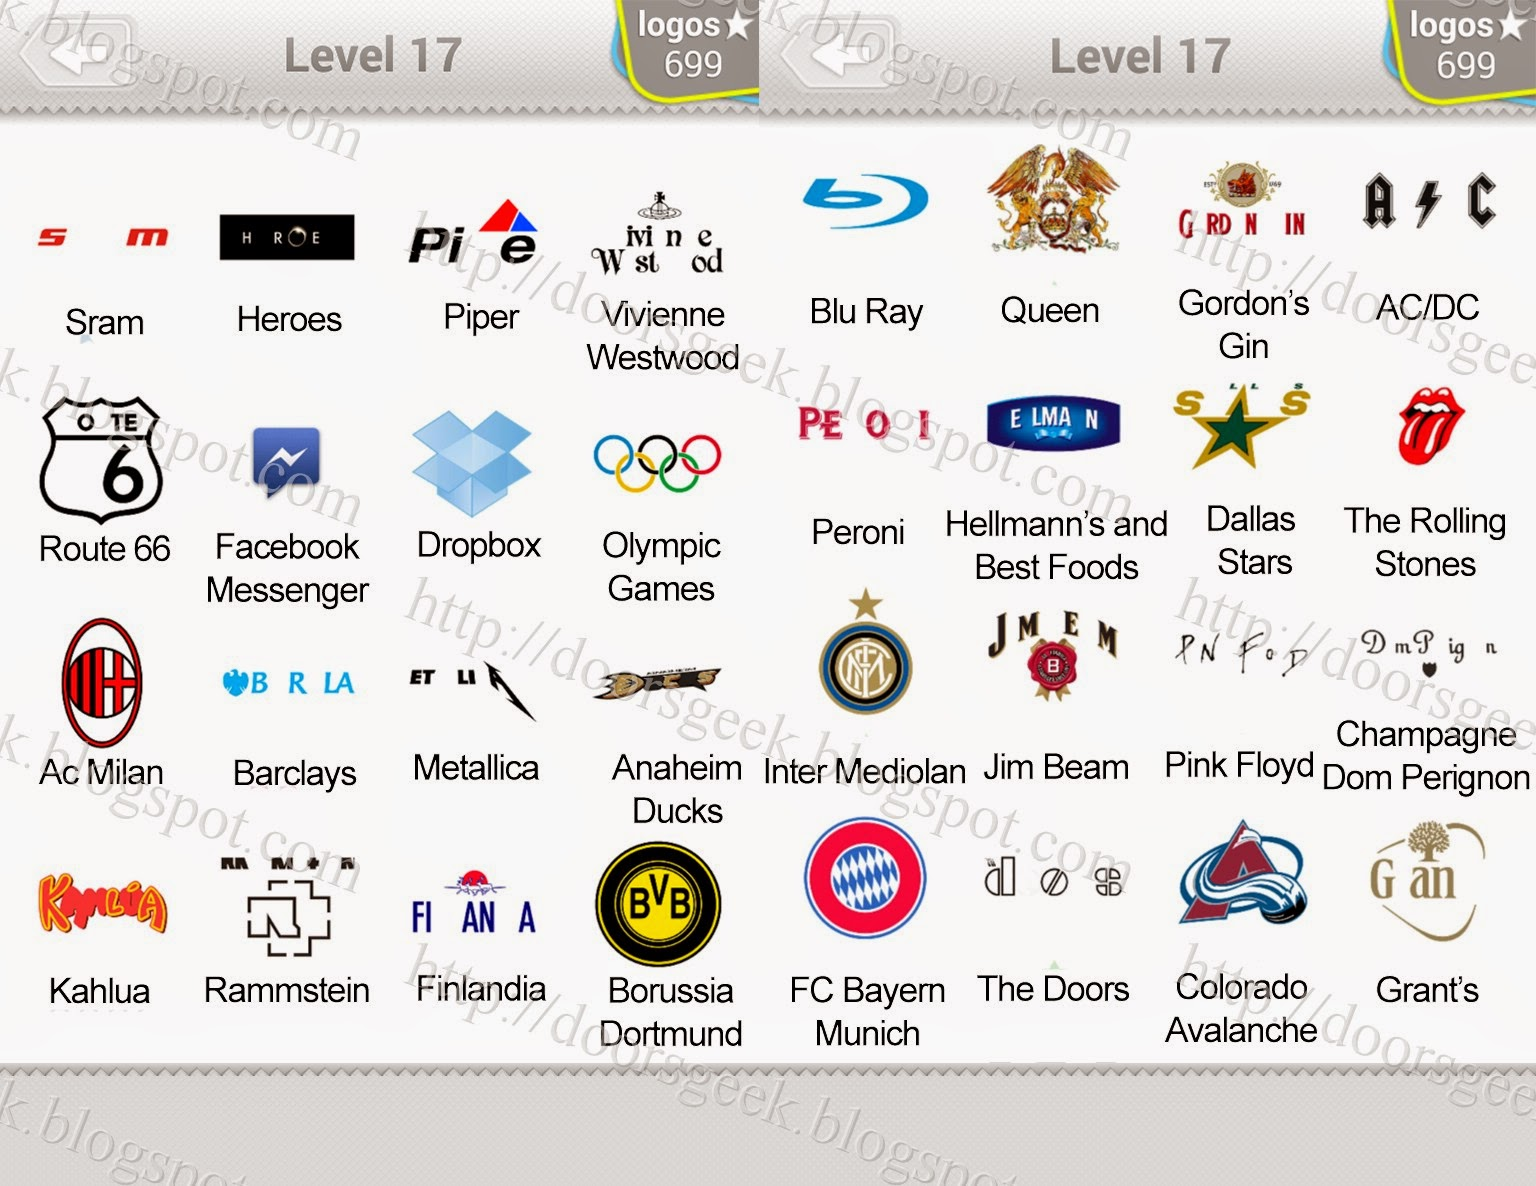 Image Gallery Logos Level 17